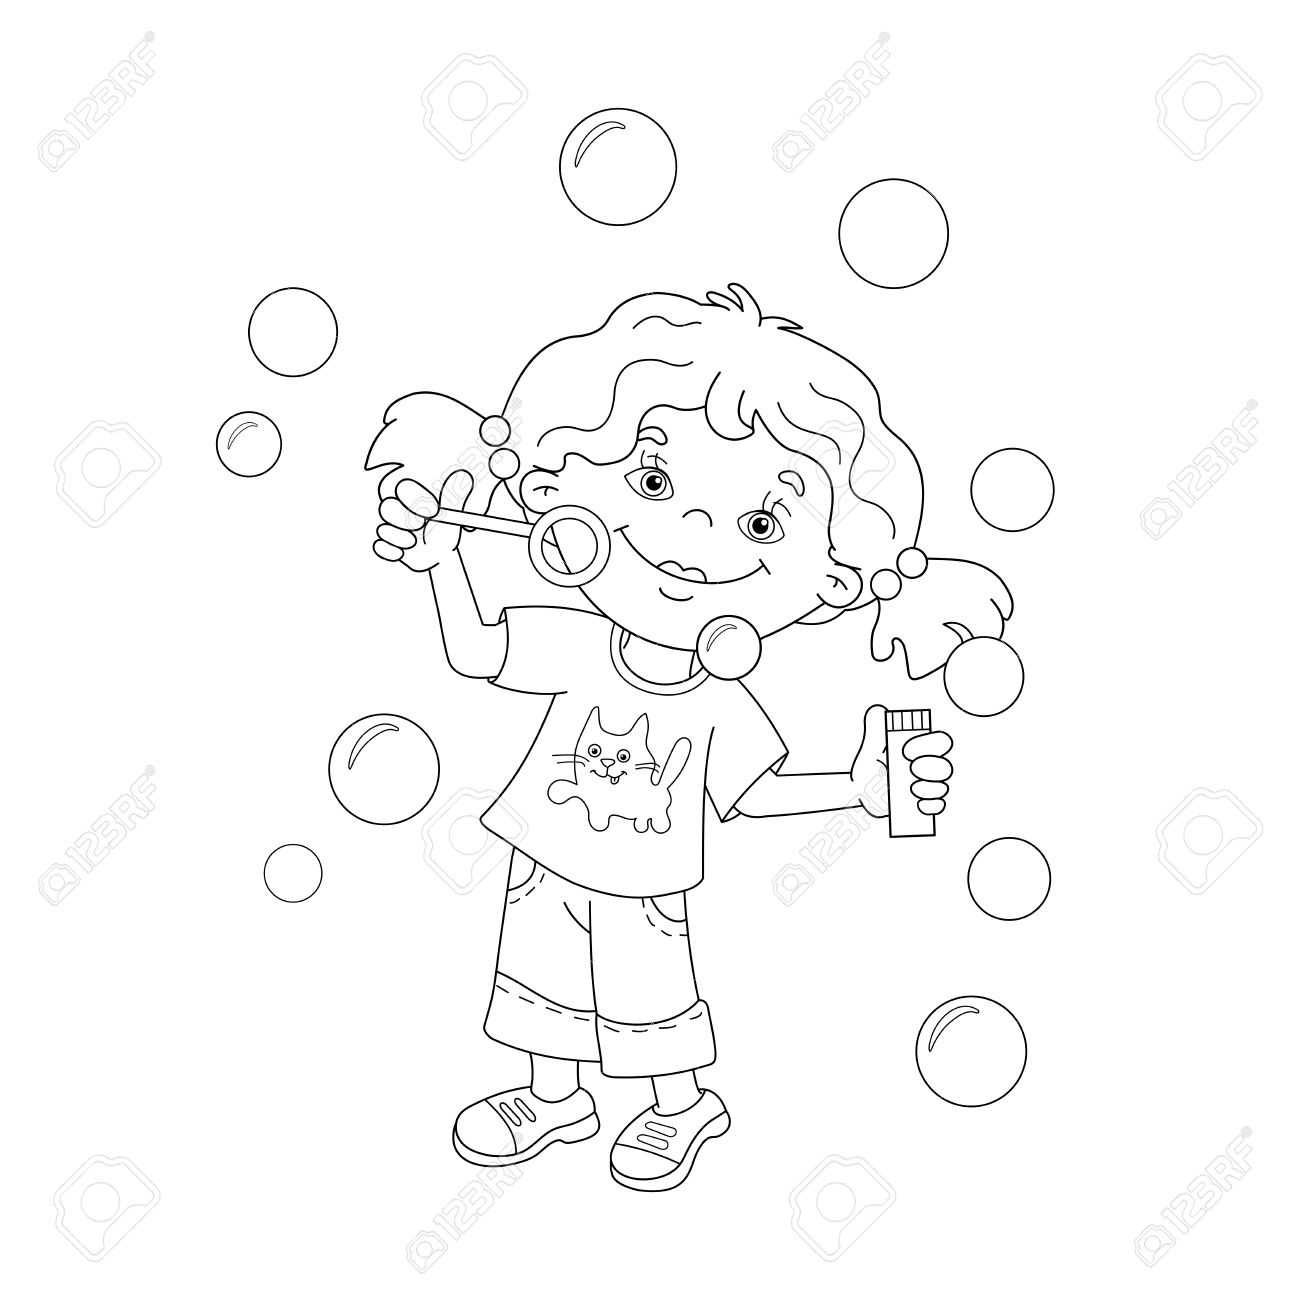 58327870 Coloring Page Outline Of cartoon girl blowing soap bubbles Coloring book for kids Stock Vector additionally blowing bubbles coloring page on blowing bubbles coloring pages including bubbles weekly free printable coloring page with adventures of on blowing bubbles coloring pages including similiar blowing bubbles coloring pages keywords coloring 26366 on blowing bubbles coloring pages moreover little girl blowing bubbles coloring page free printable on blowing bubbles coloring pages